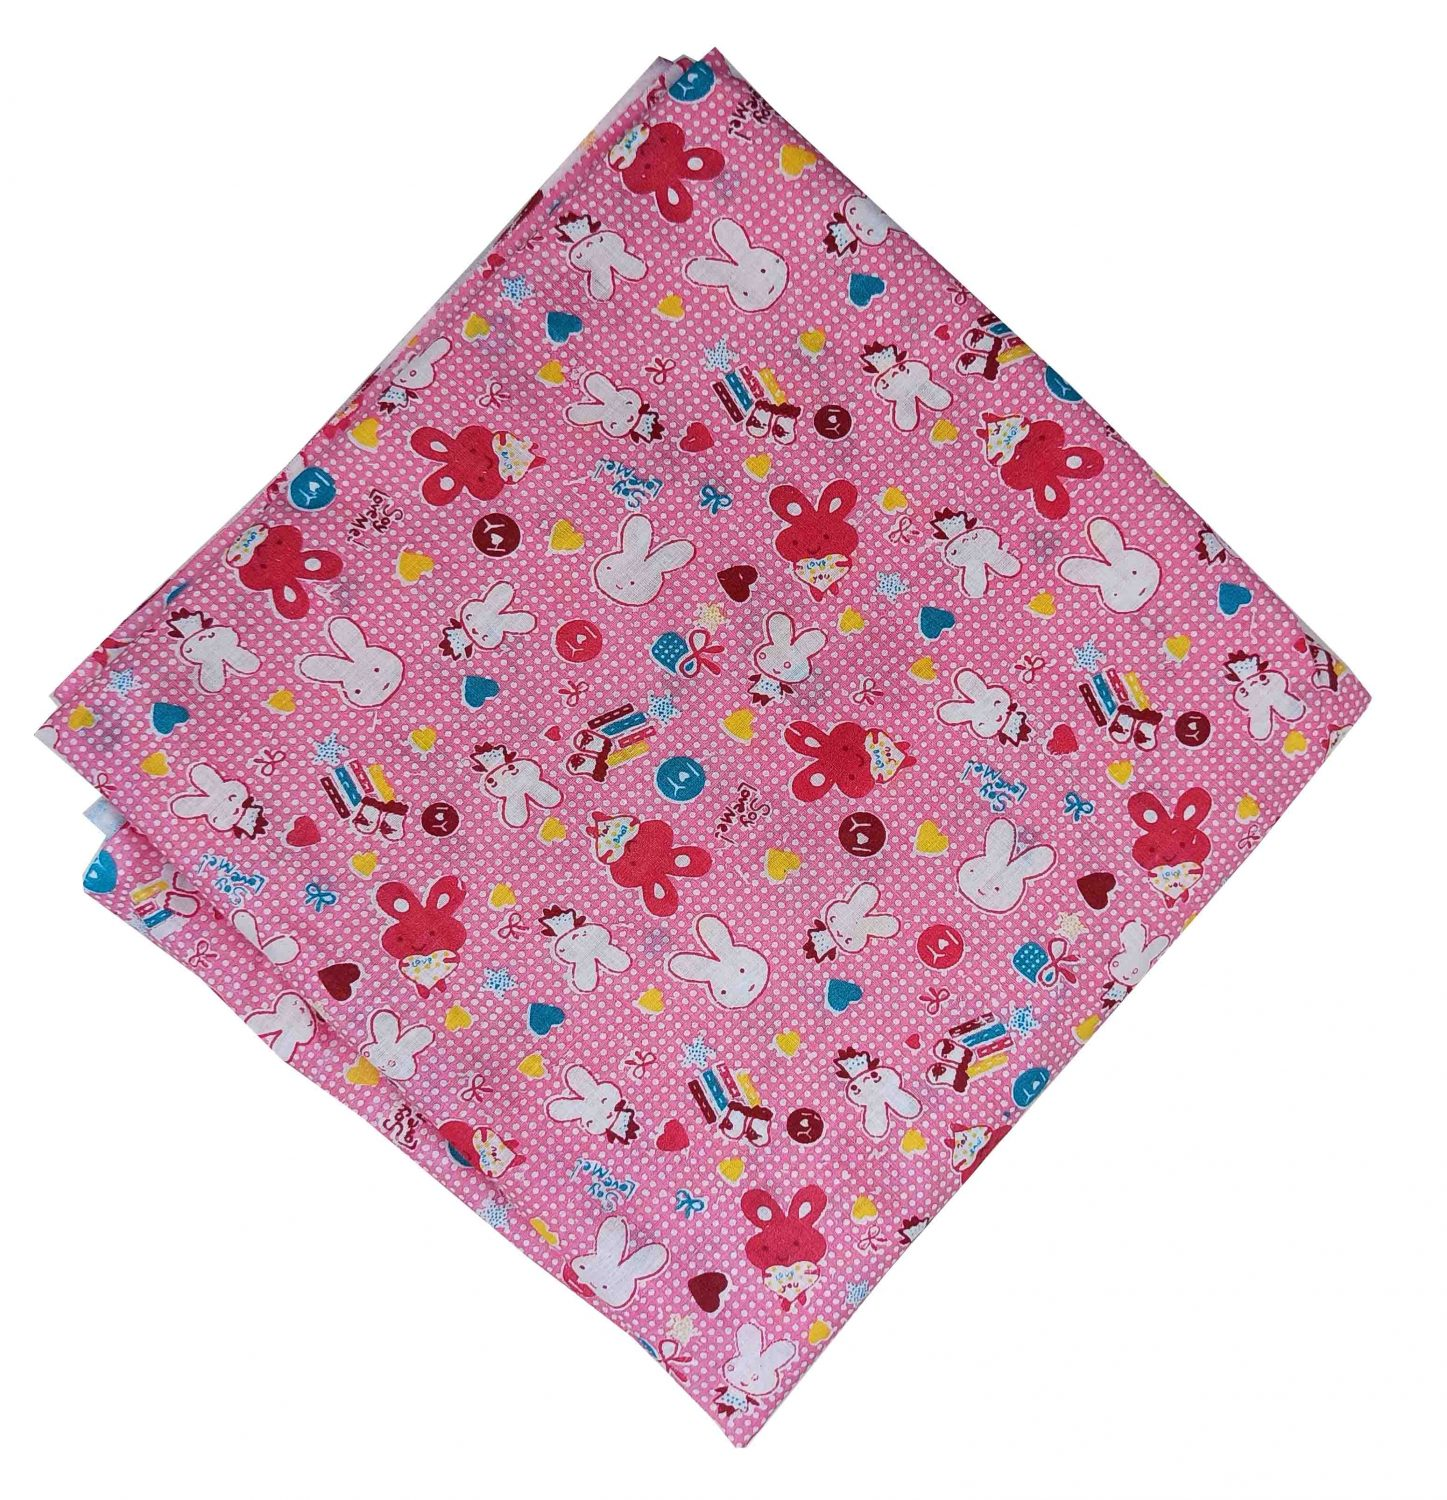 Pink Baby Print Pure Cotton Fabric Soft Skin Friendly Material PC536 1